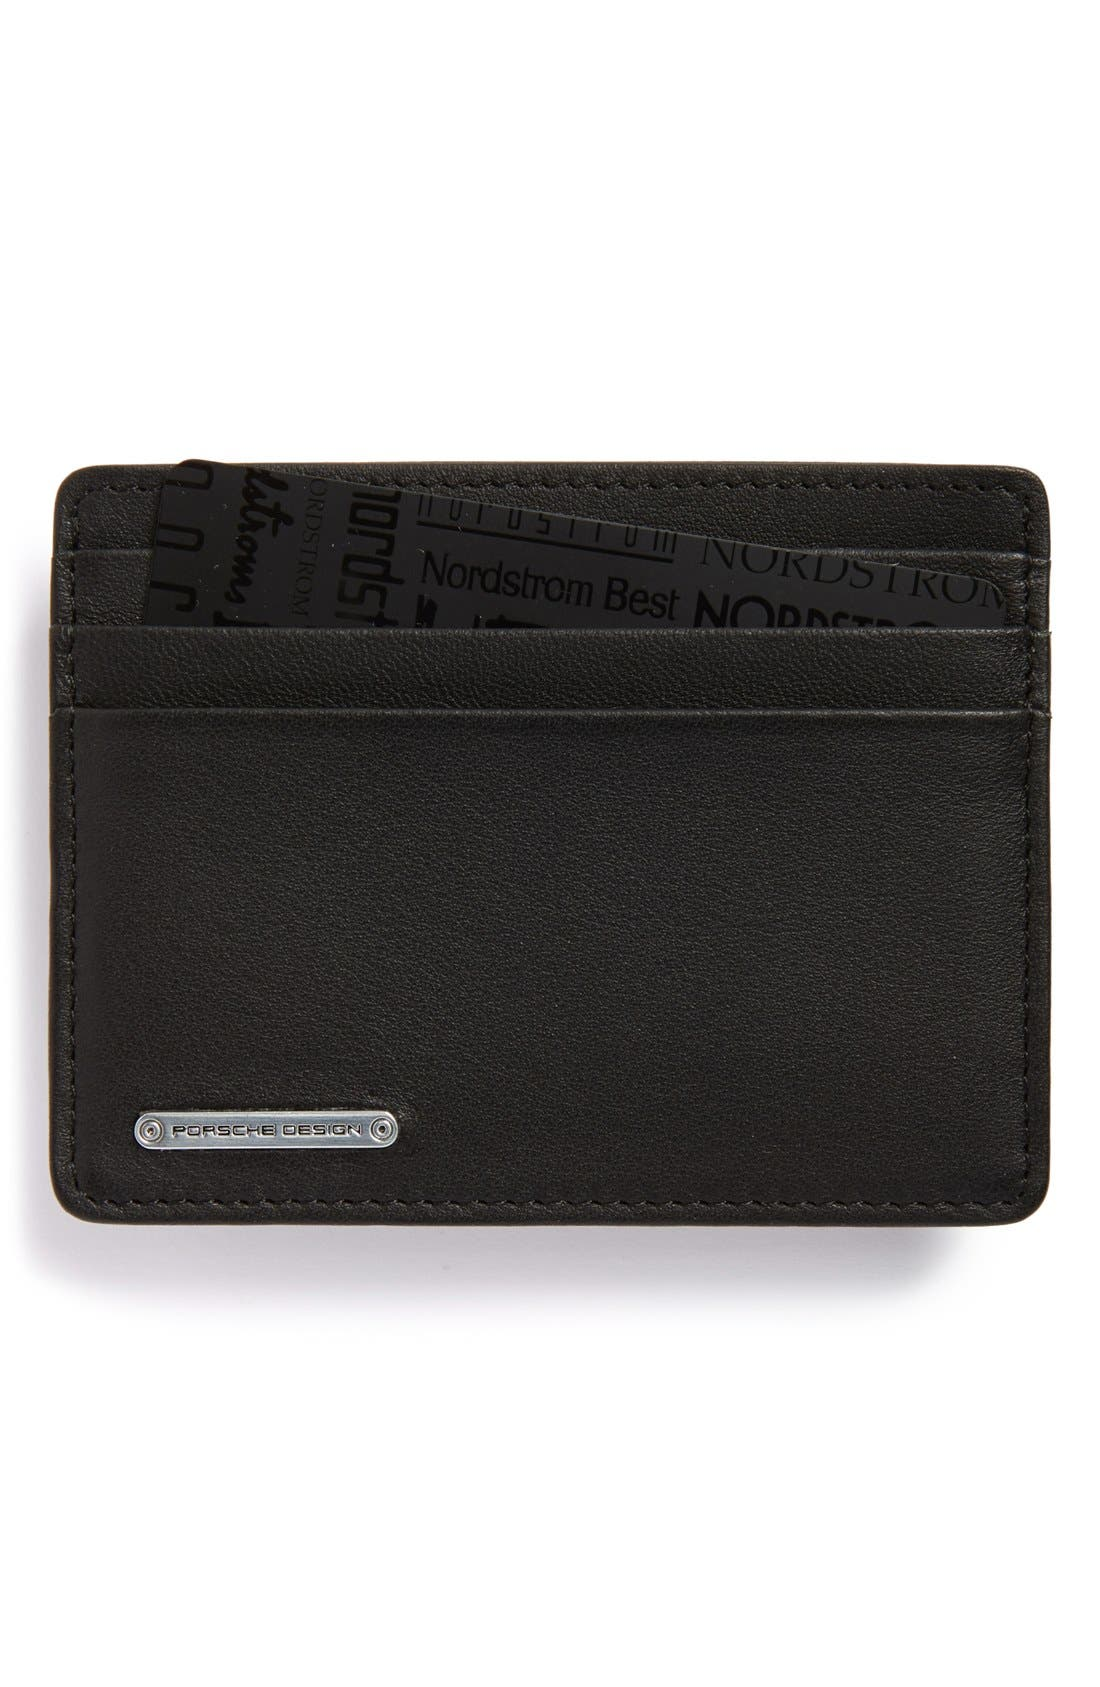 PORSCHE DESIGN Leather Cardholder